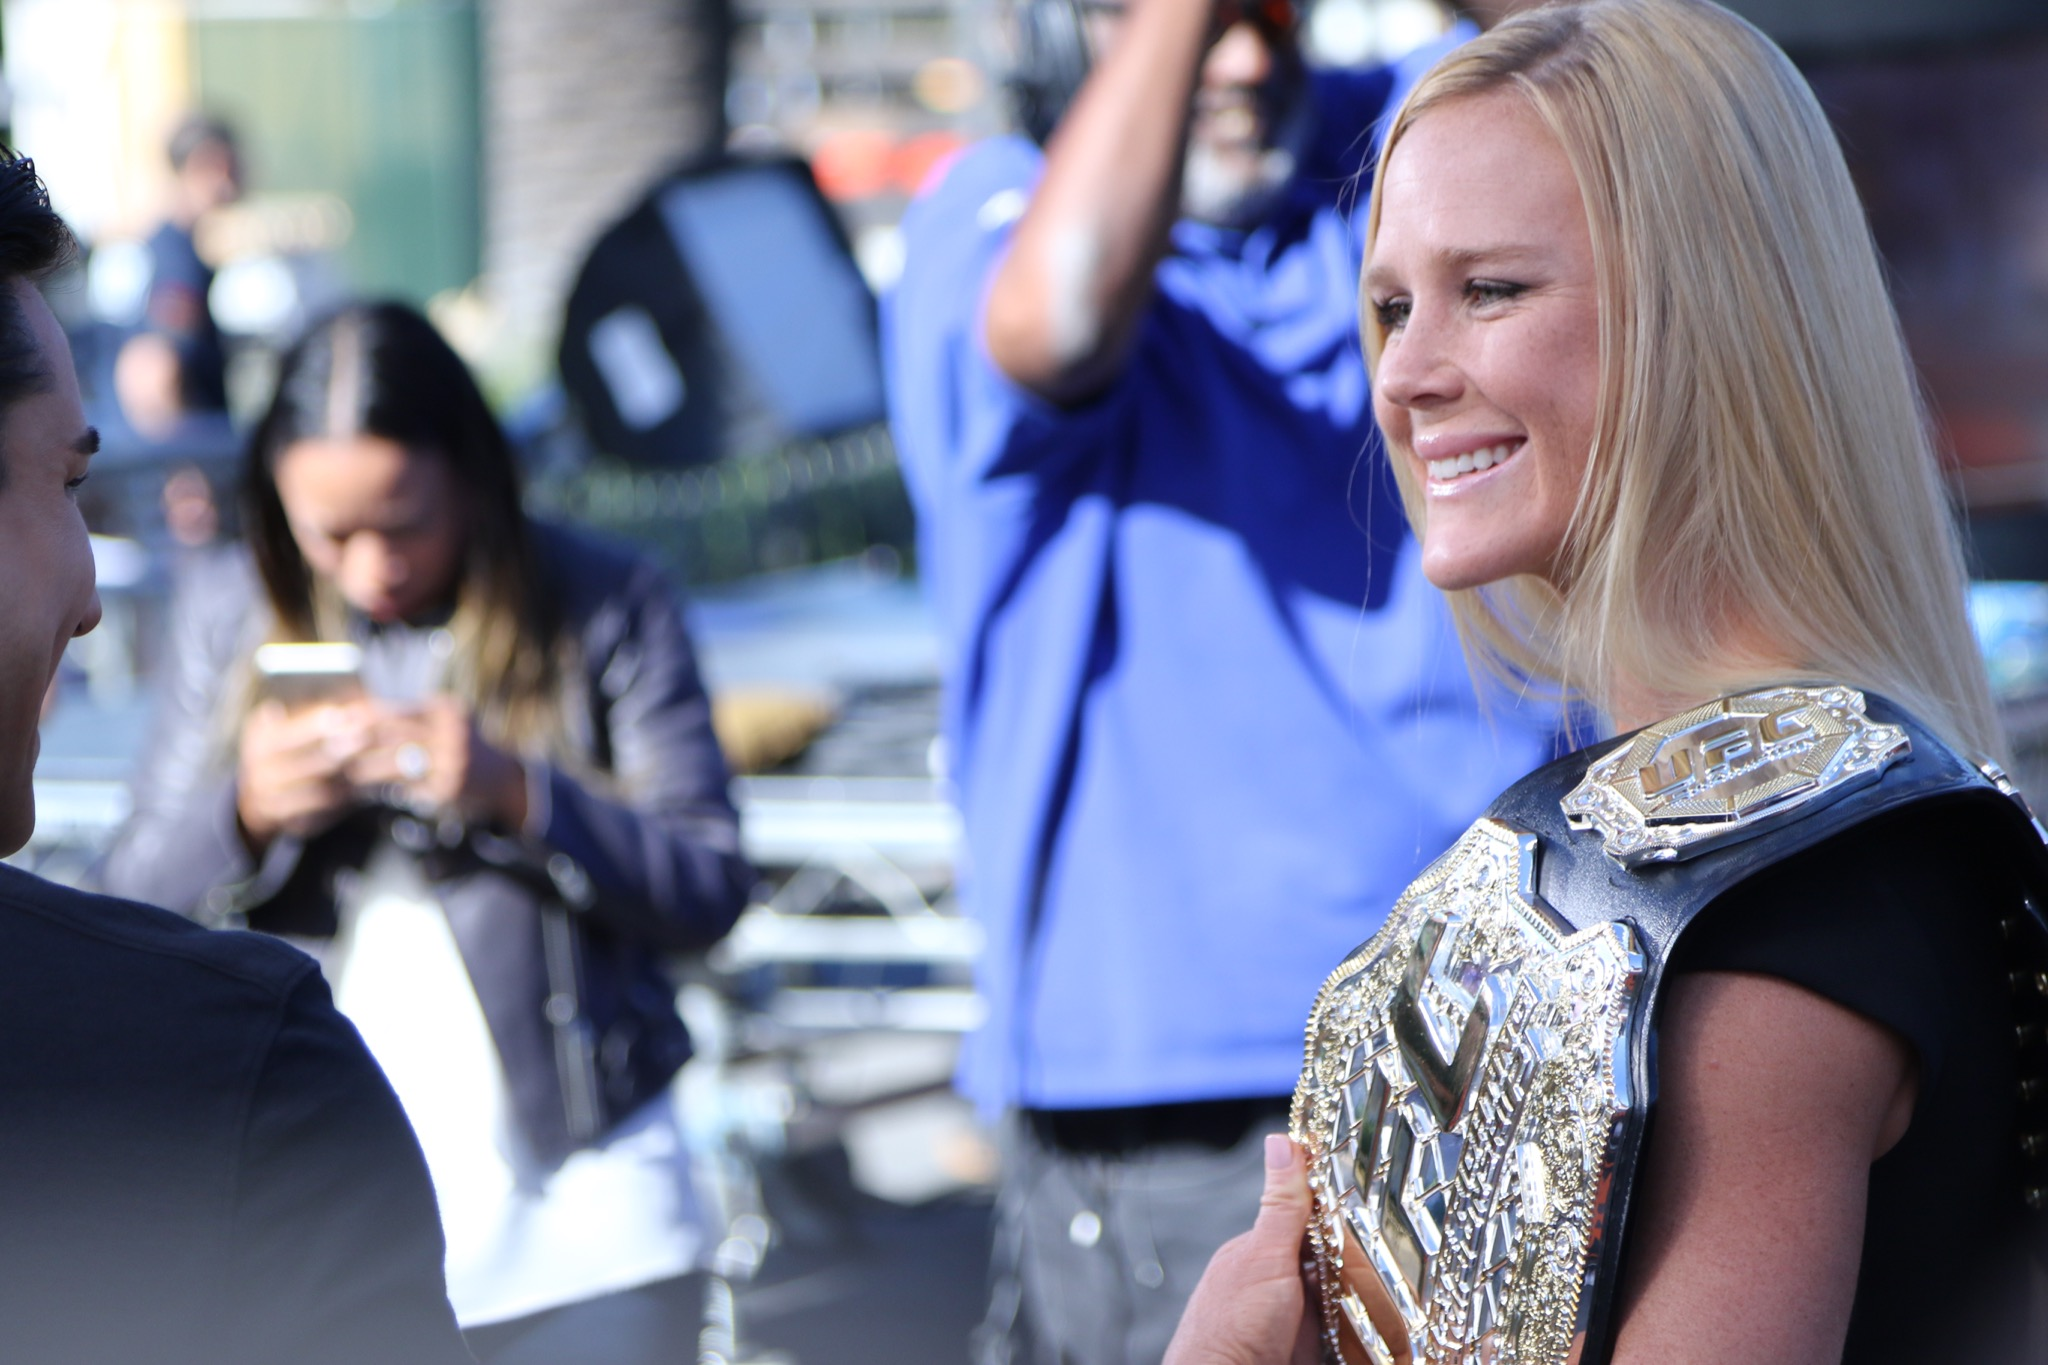 Holly Holm brings her championship belt to set of 'Extra' at Universal Studios Hollywood Featuring: Holly Holm Where: Los Angeles, California, United States When: 19 Nov 2015 Credit: WENN.com